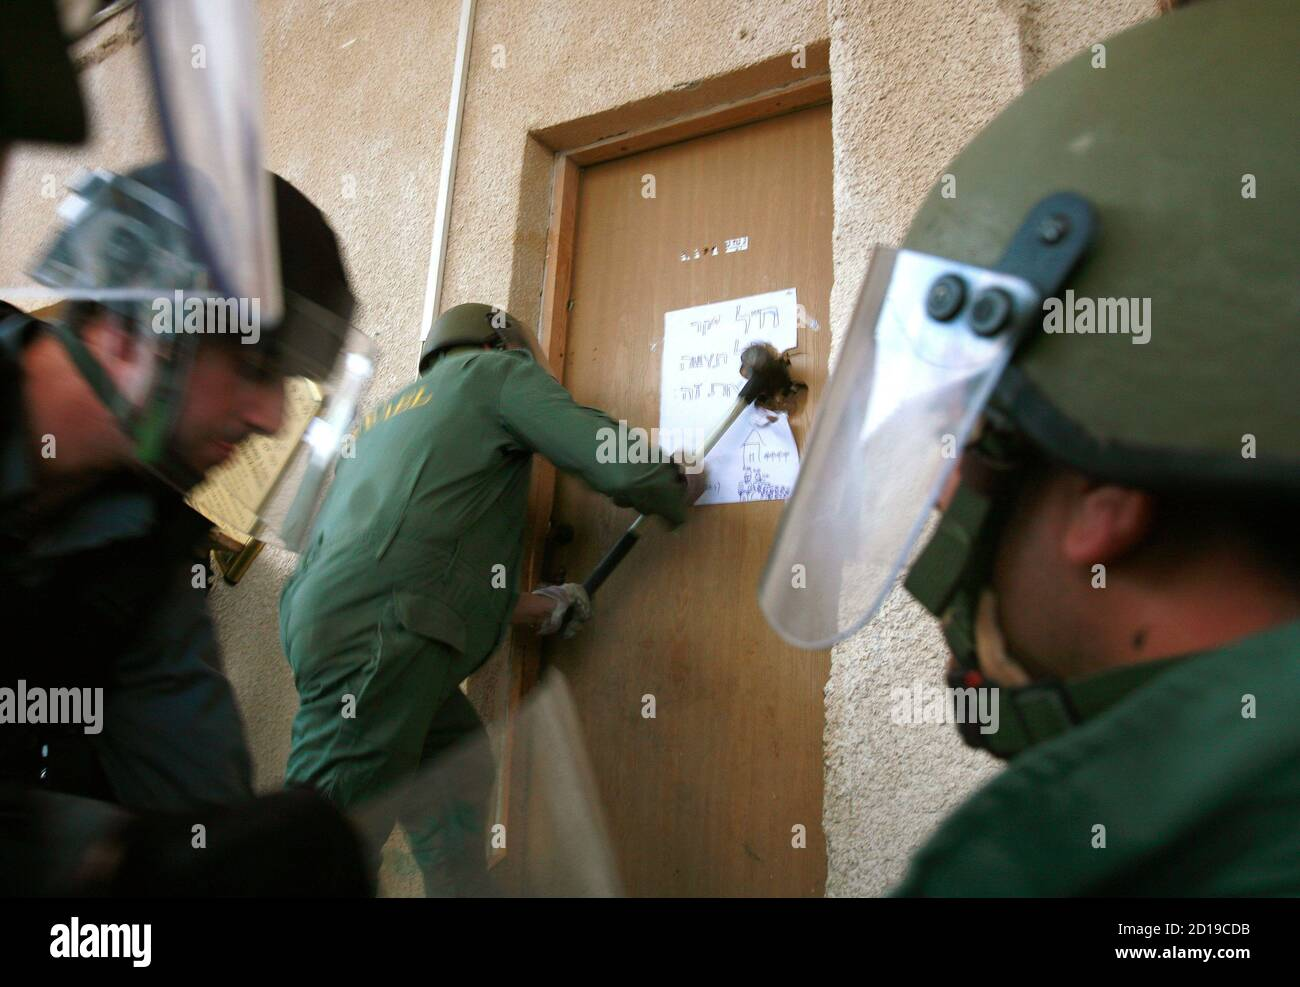 Police Break Down Door High Resolution Stock Photography And Images Alamy